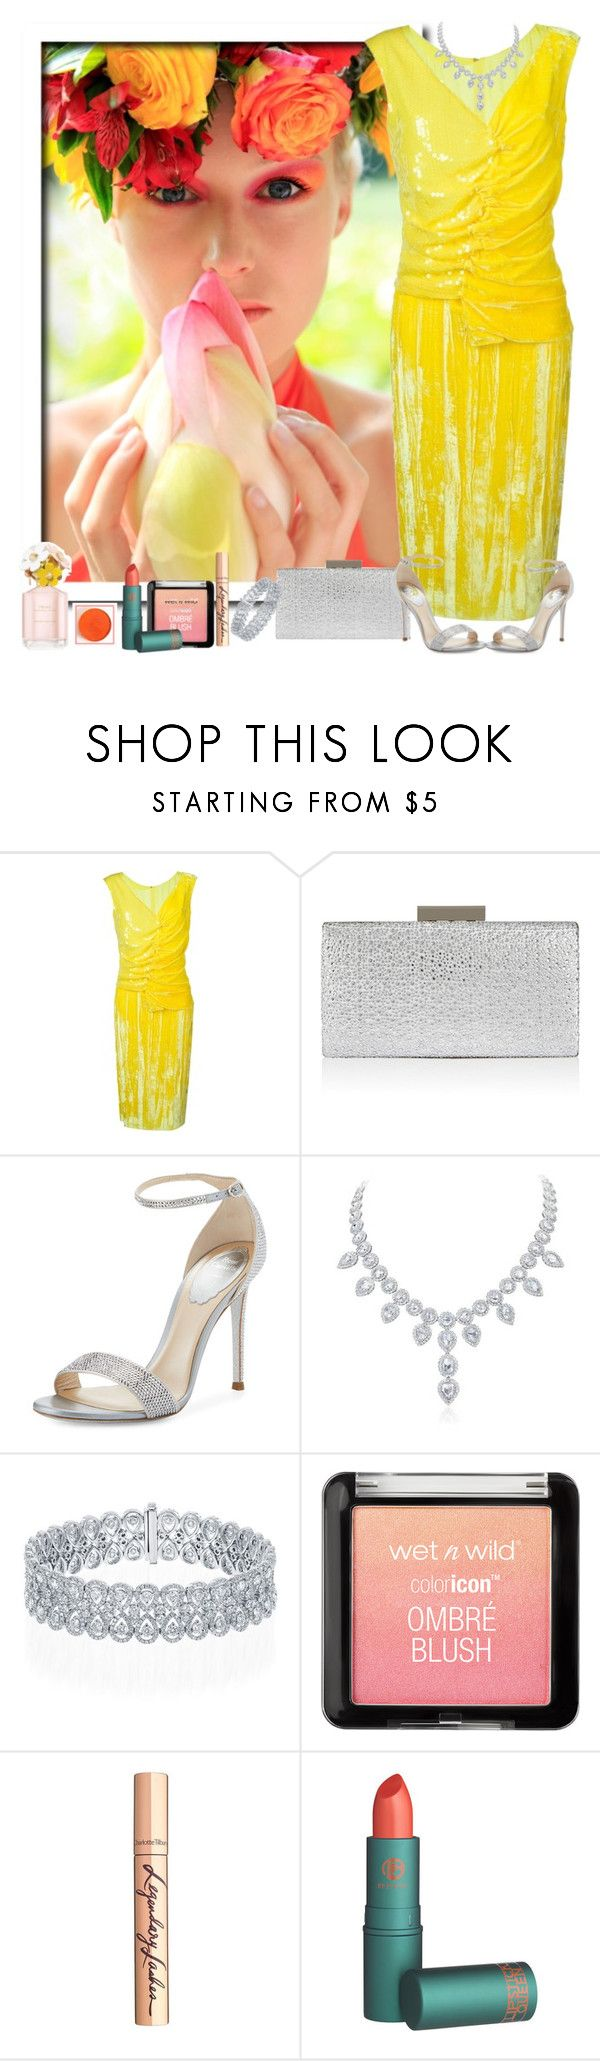 """""""Spring has sprung"""" by stephanielee4 ❤ liked on Polyvore featuring Nina Ricci, Monsoon, René Caovilla, Charlotte Tilbury and Marc Jacobs"""